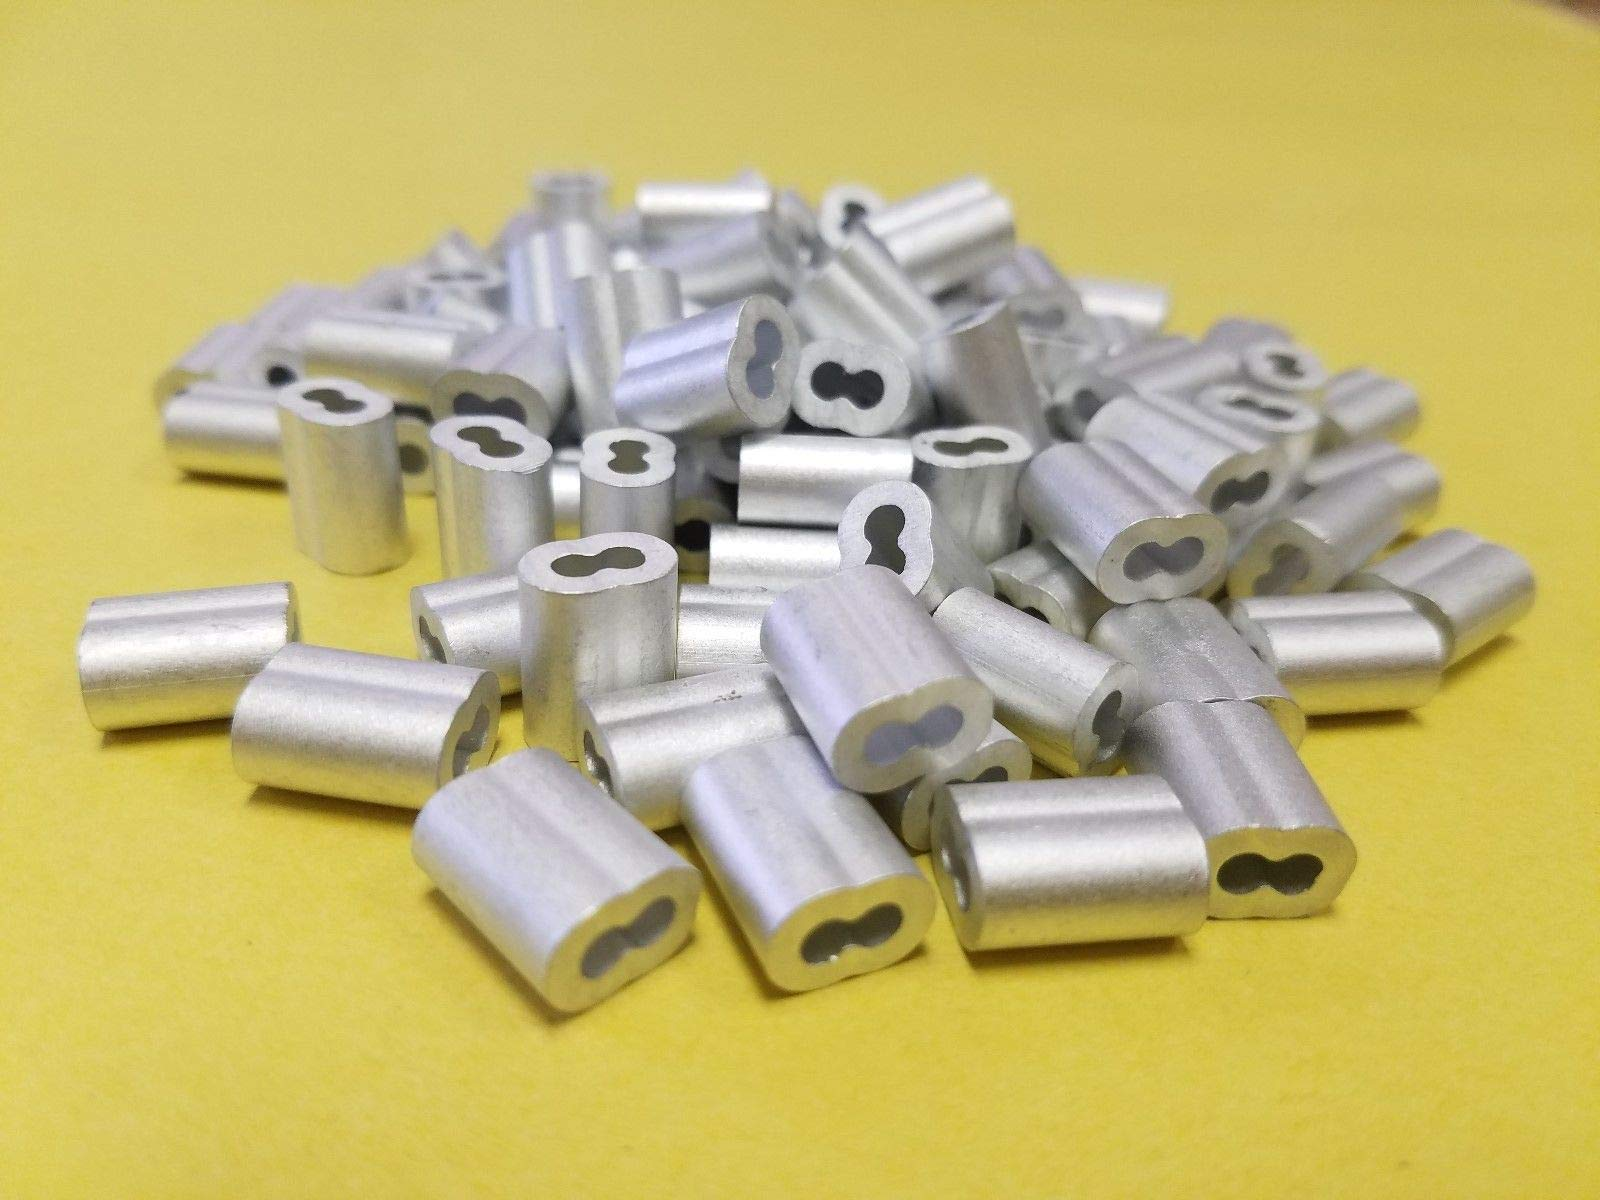 Aluminum Swage crimps/Sleeves for 3/32'' Wire Rope Cable:50,100,200,500 &1000 pcs (200)